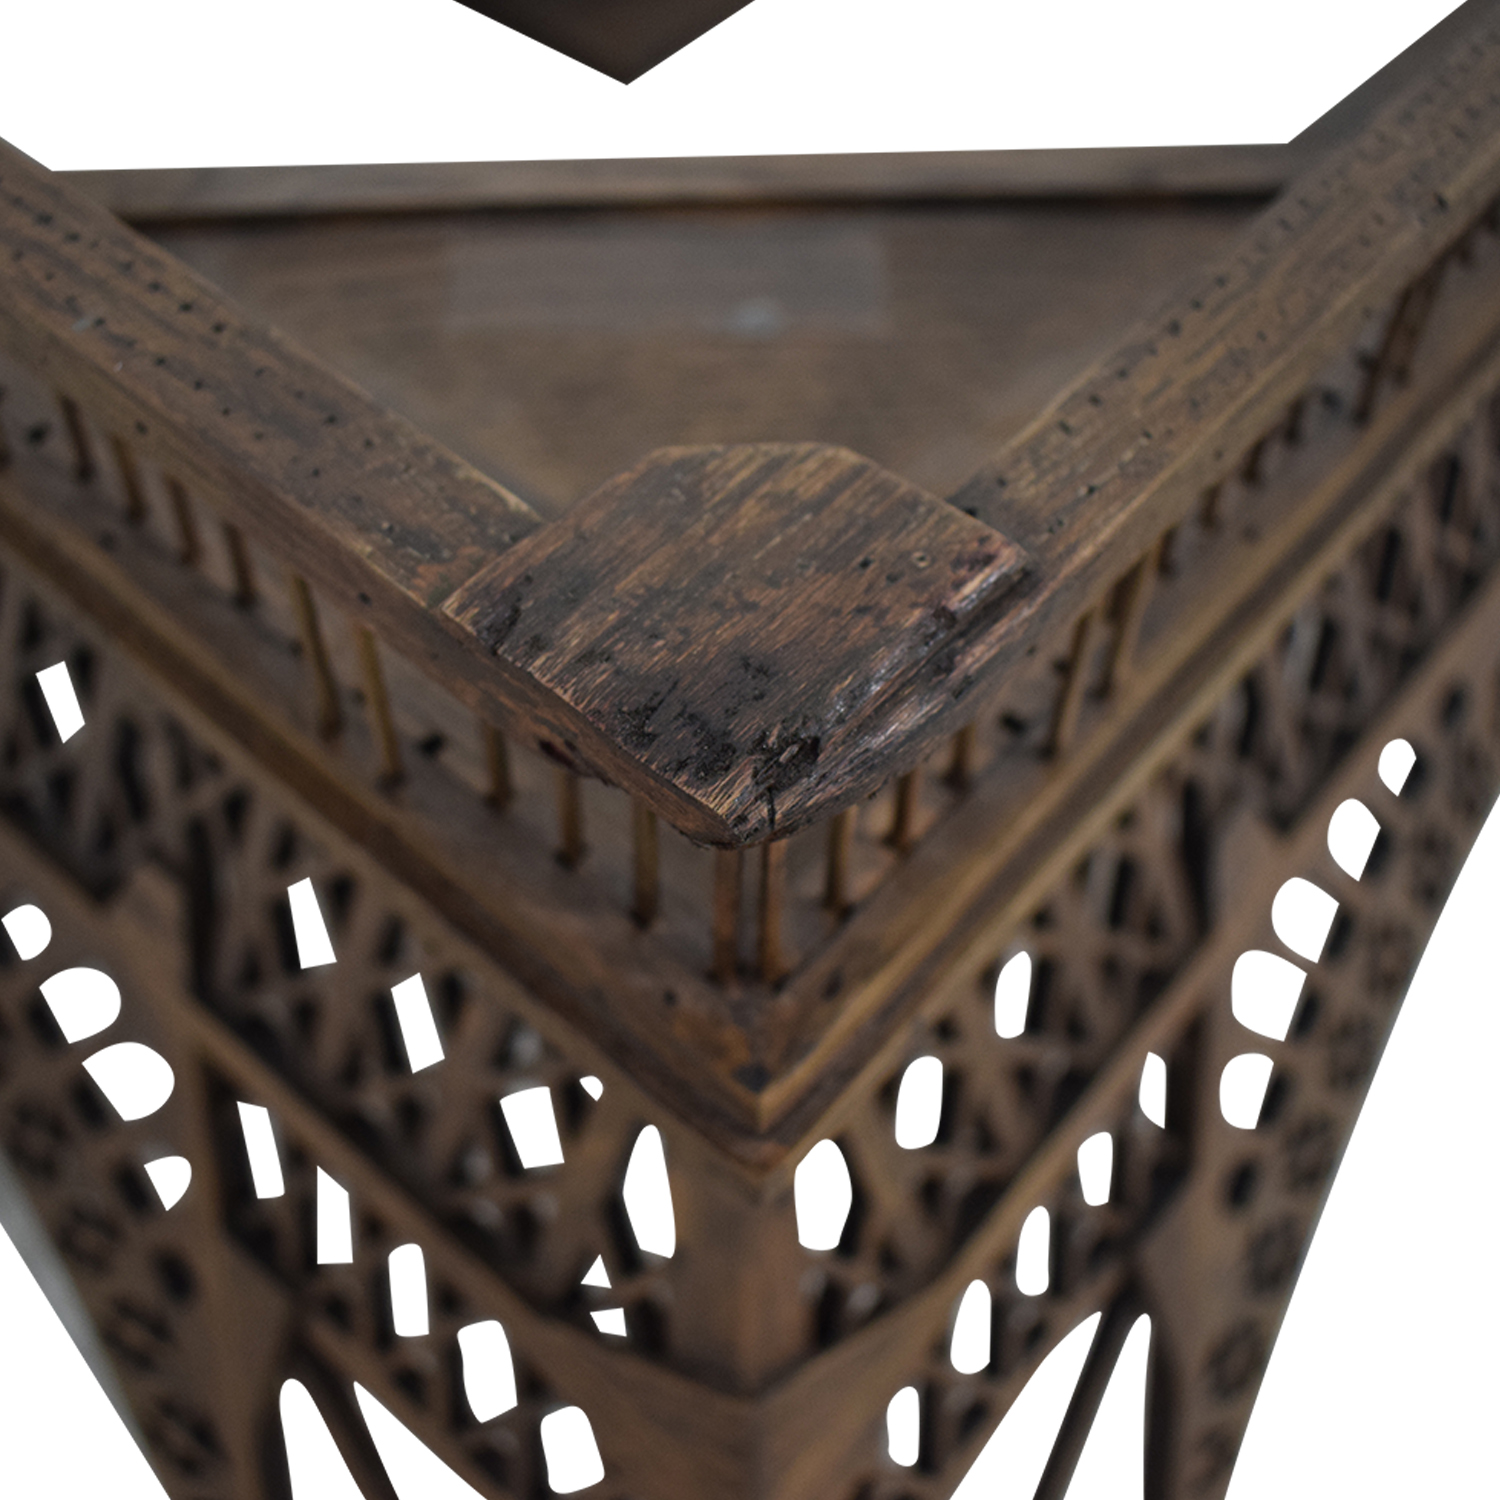 Restoration Hardware Restoration Hardware Eiffel Tower dimensions